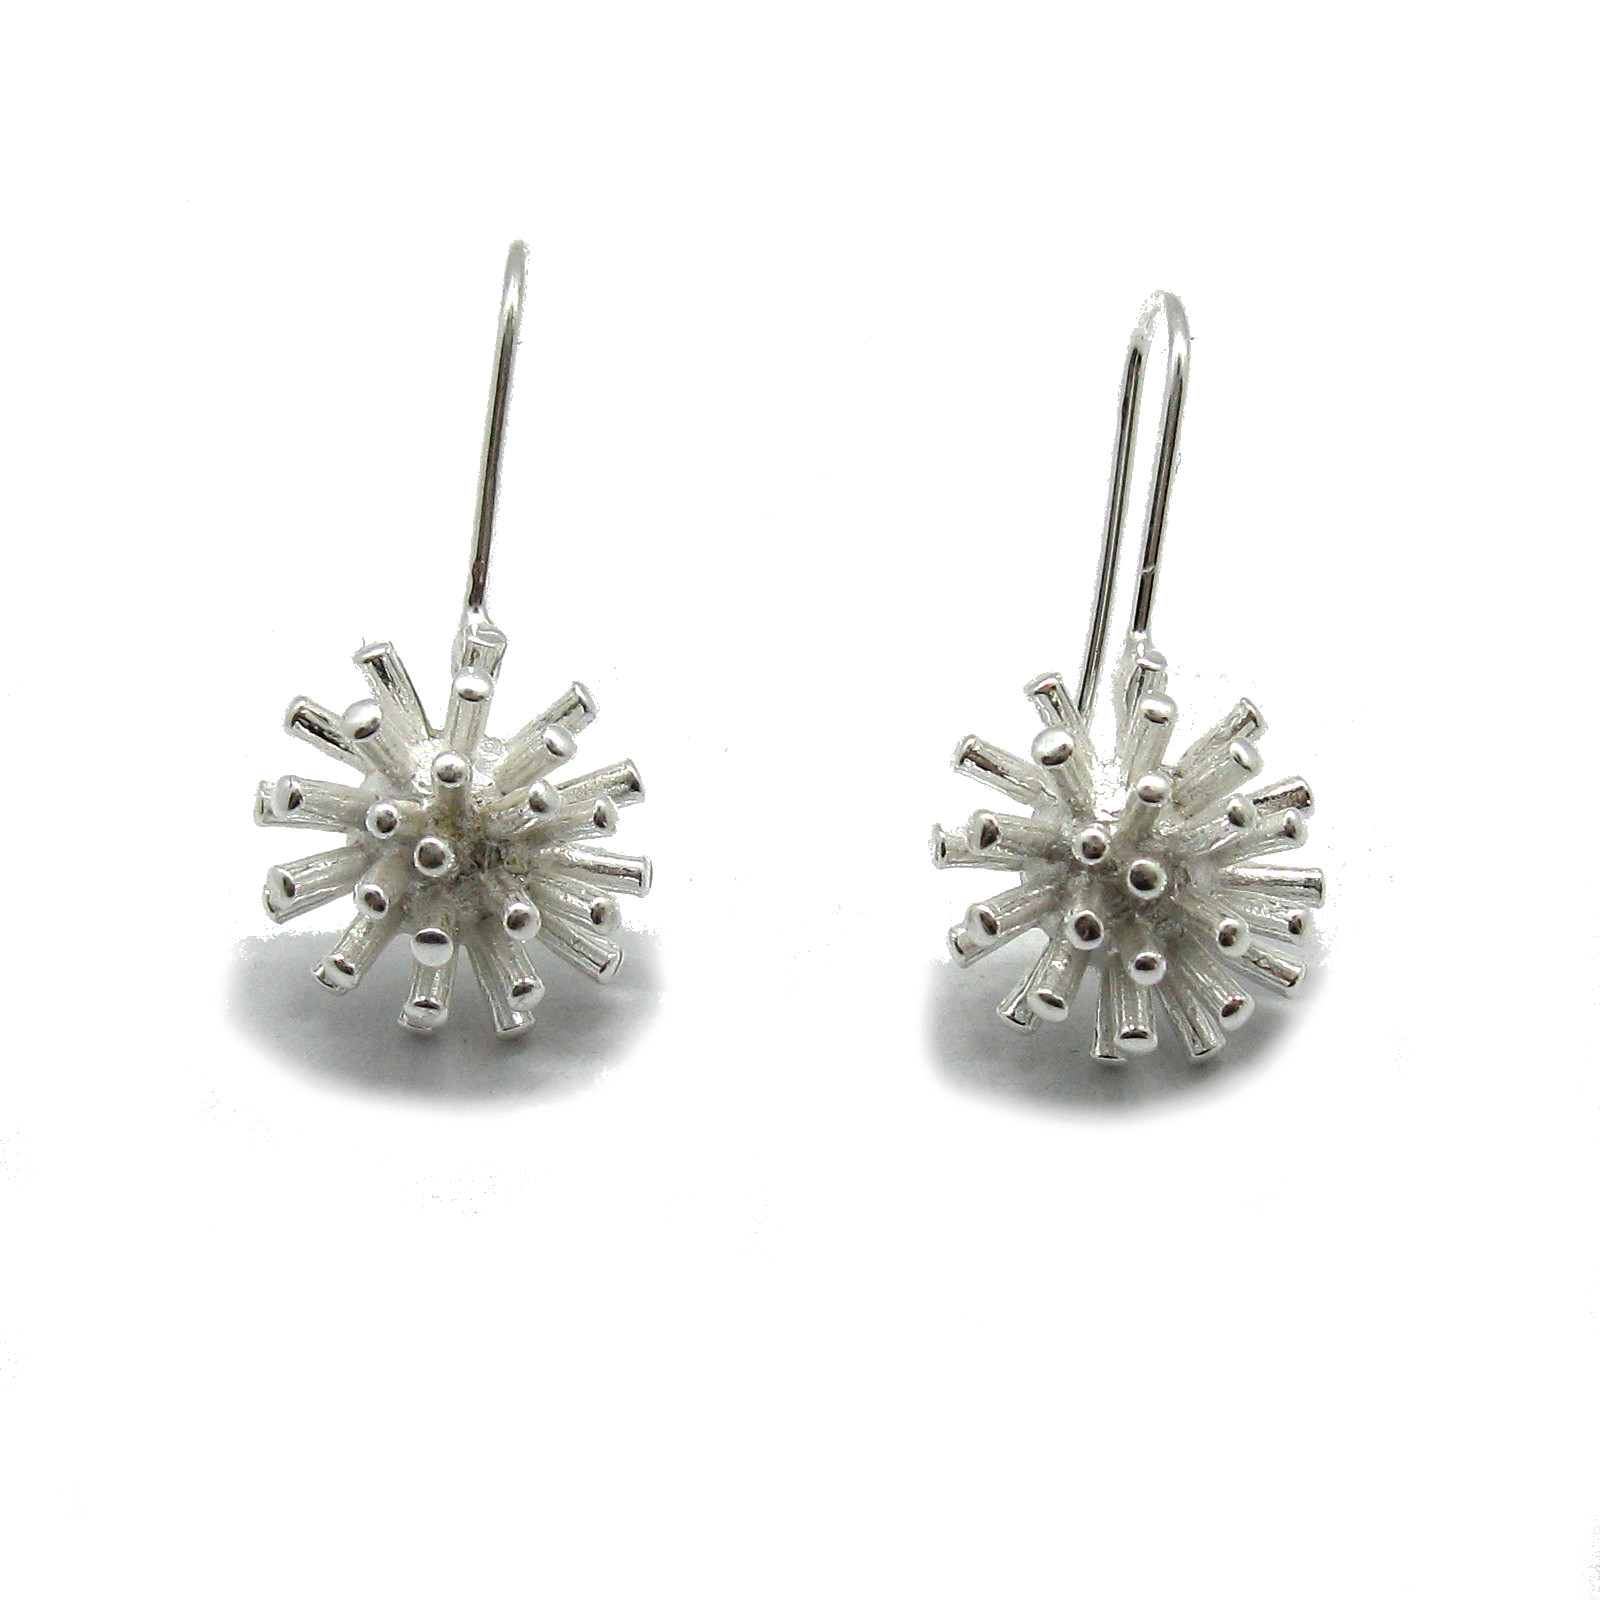 Silver earrings - E000745